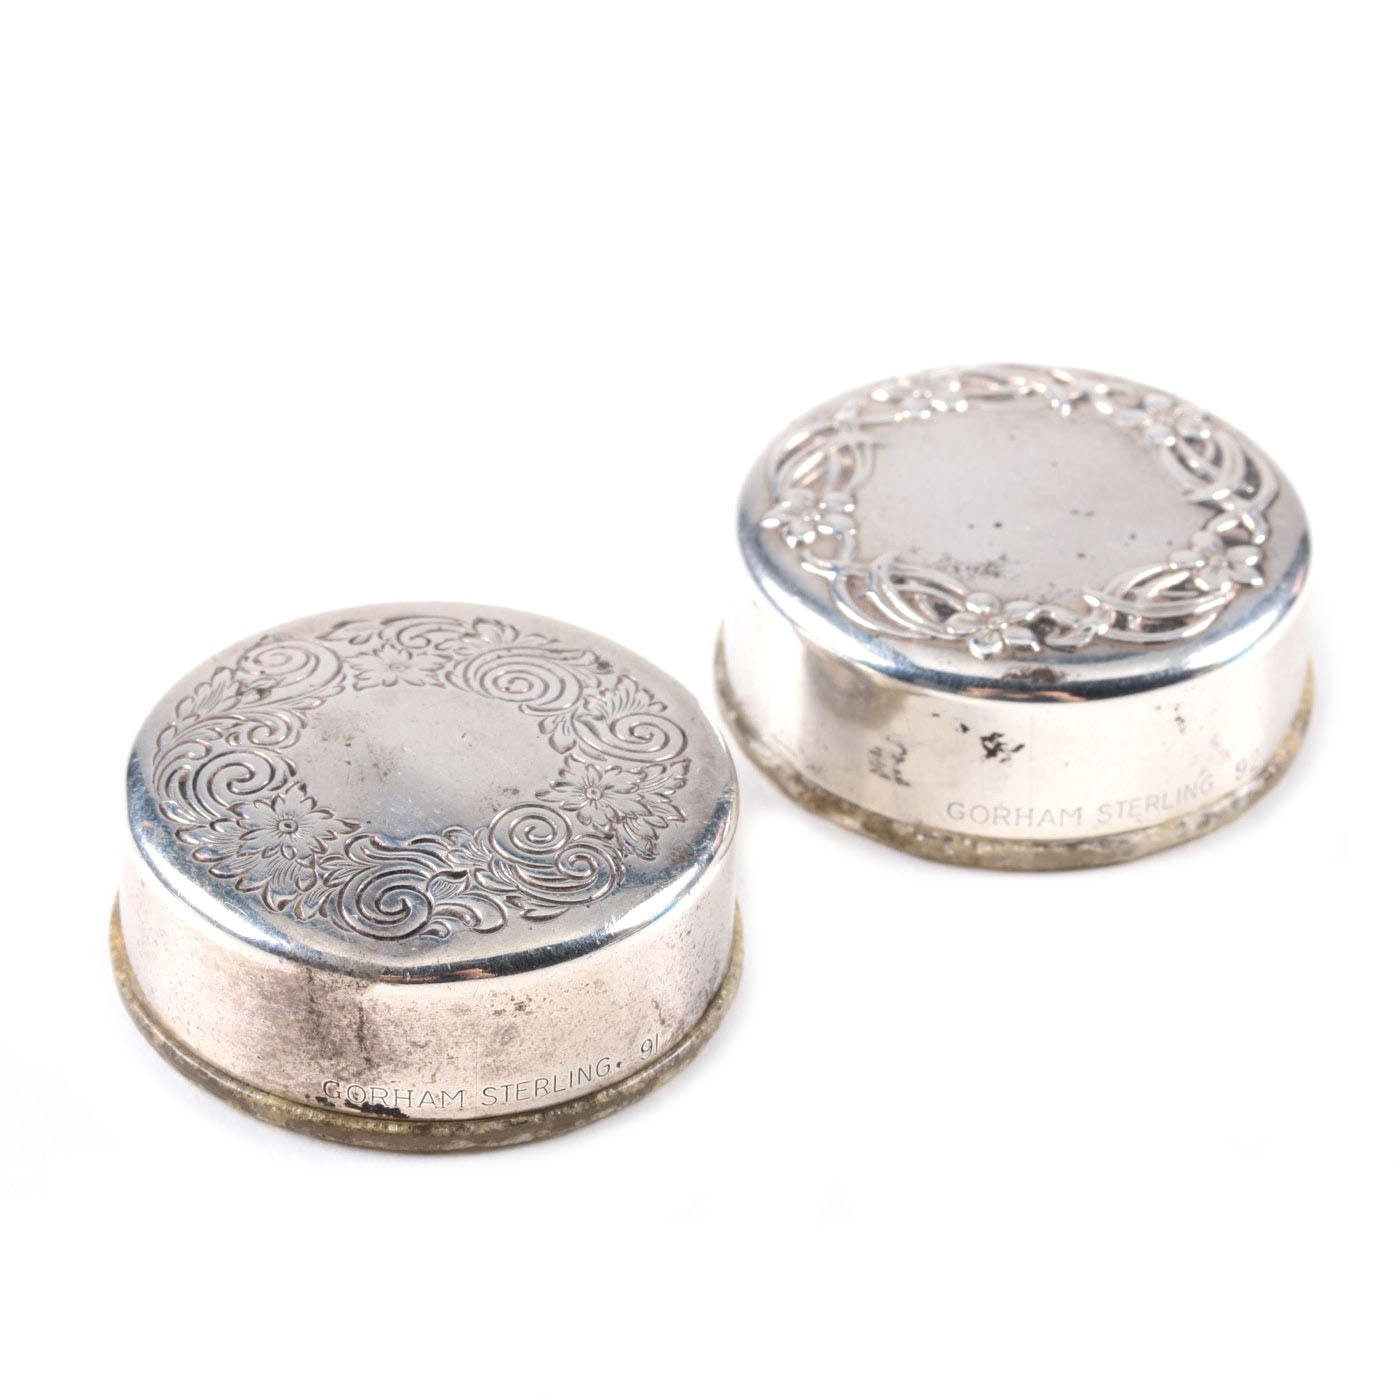 Pair of Gorham Sterling Silver Pill Boxes